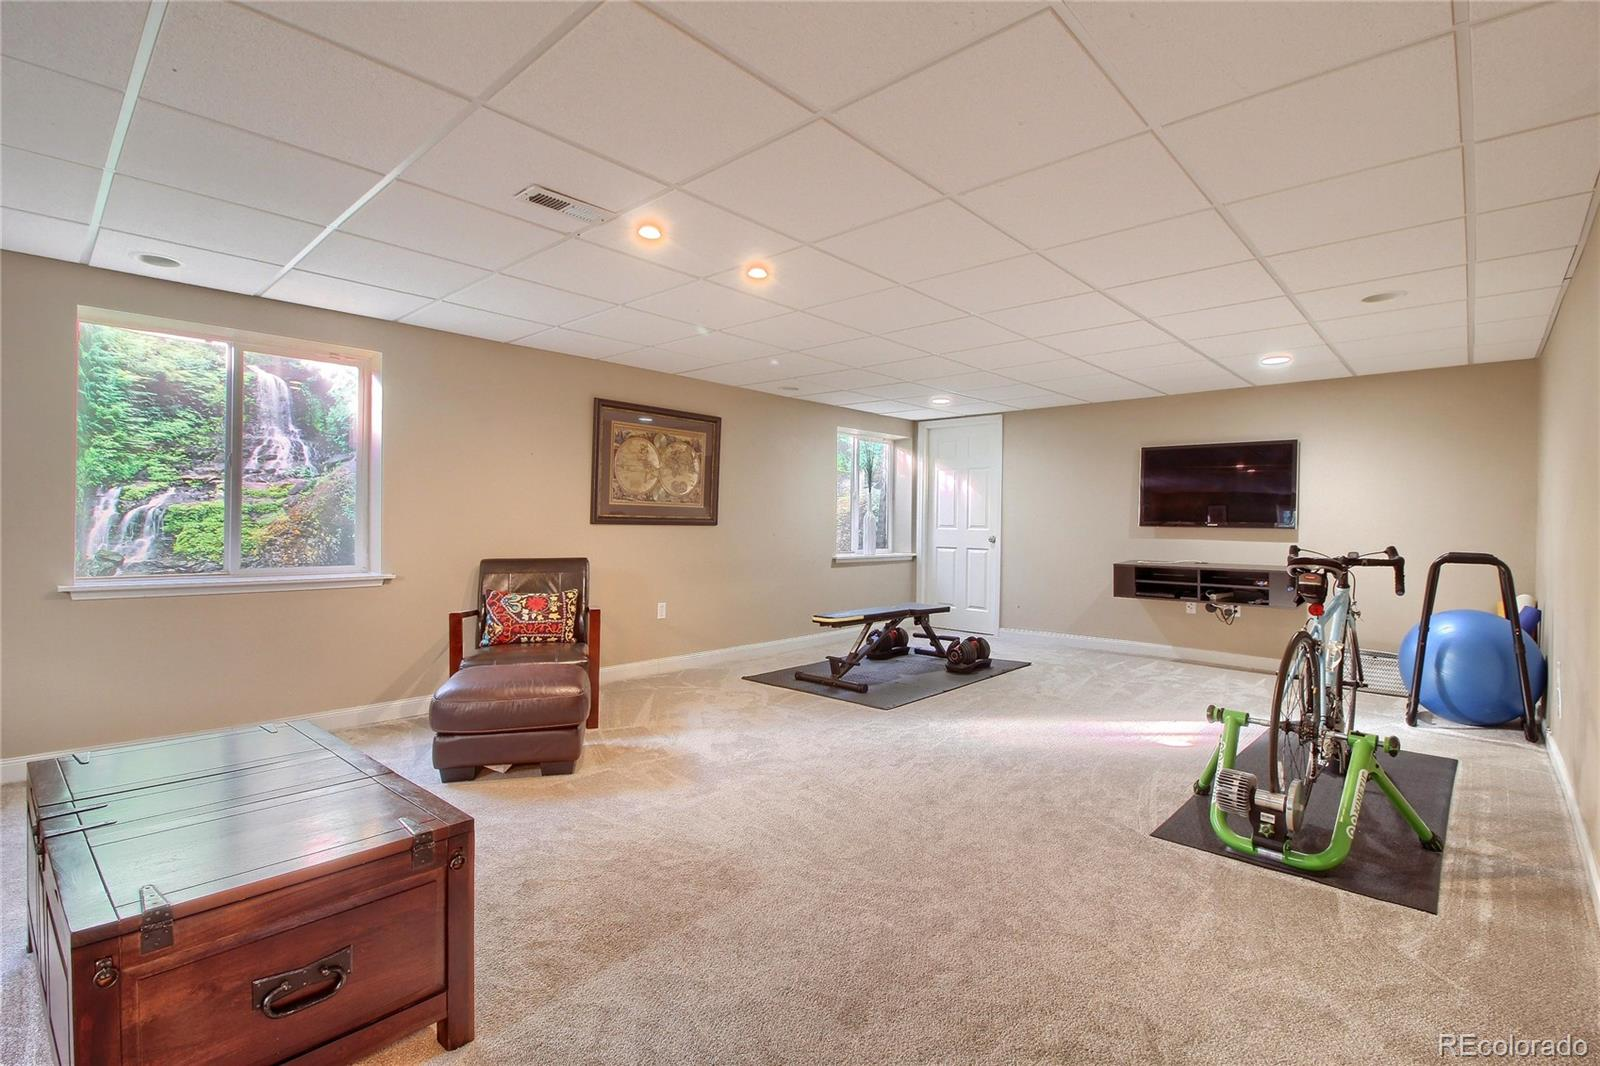 MLS# 3161208 - 24 - 1068 W 135th Court, Westminster, CO 80234